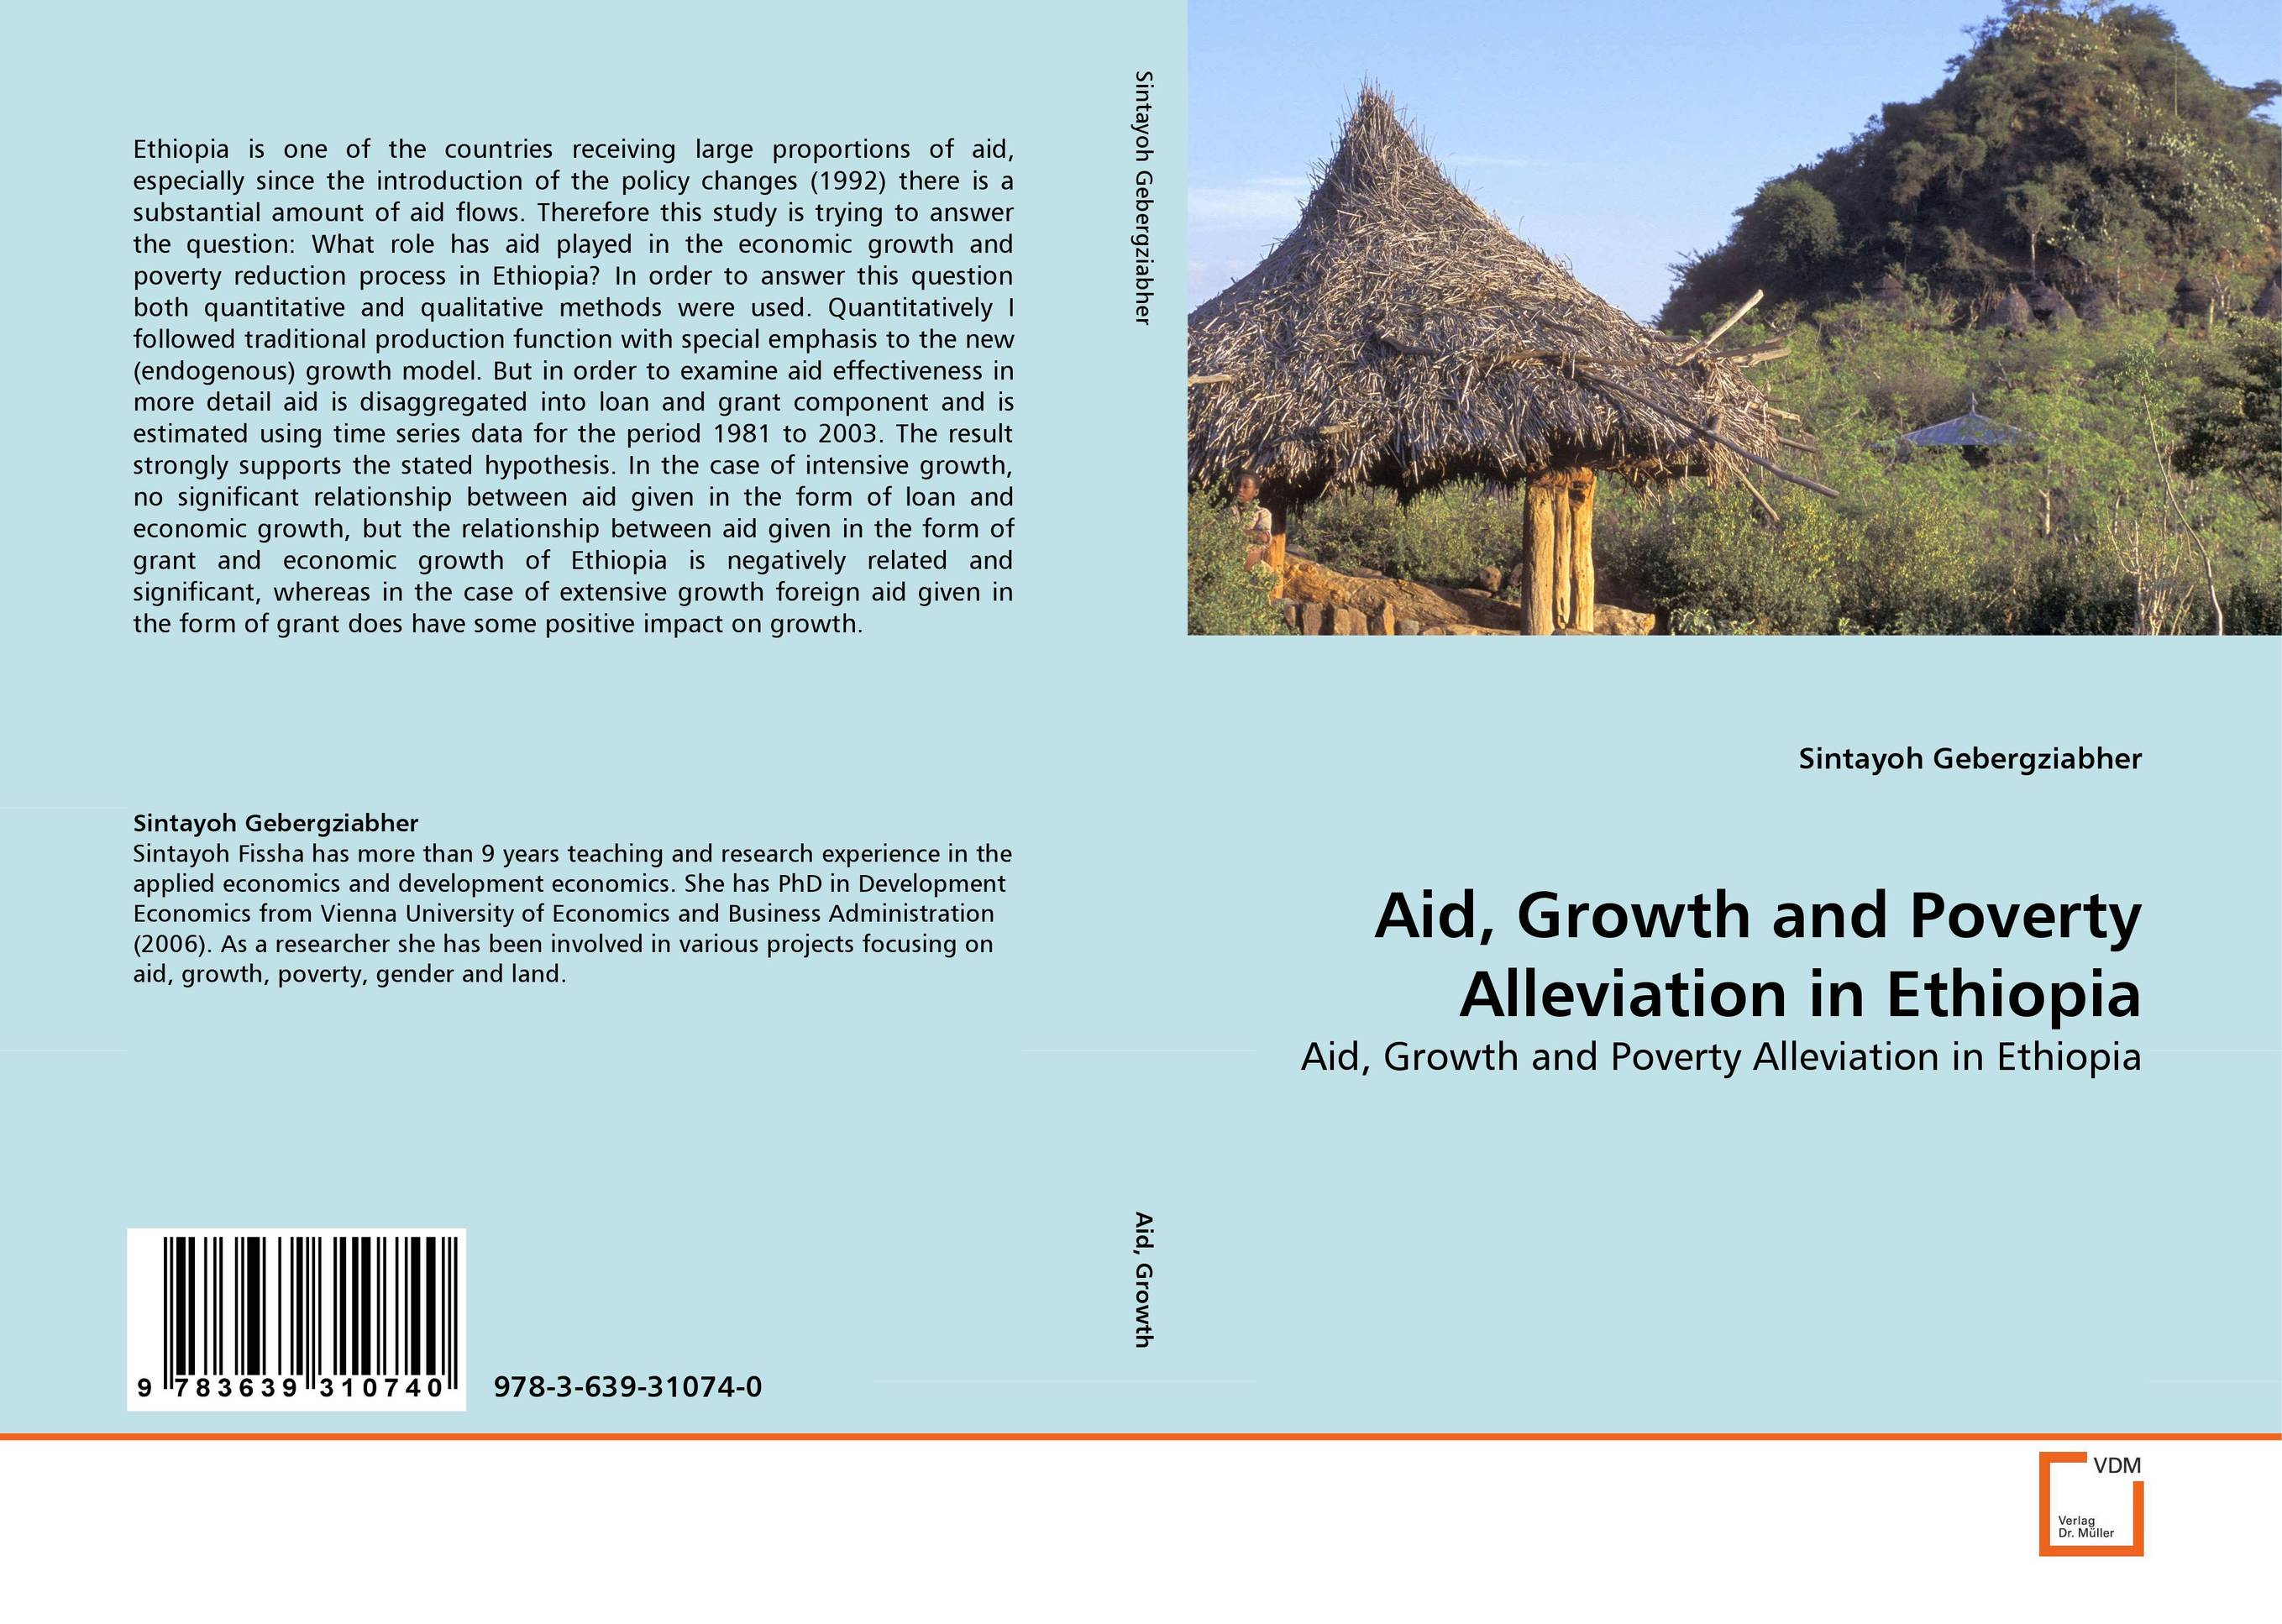 Aid, Growth and Poverty Alleviation in Ethiopia developmental state and economic transformation the case of ethiopia